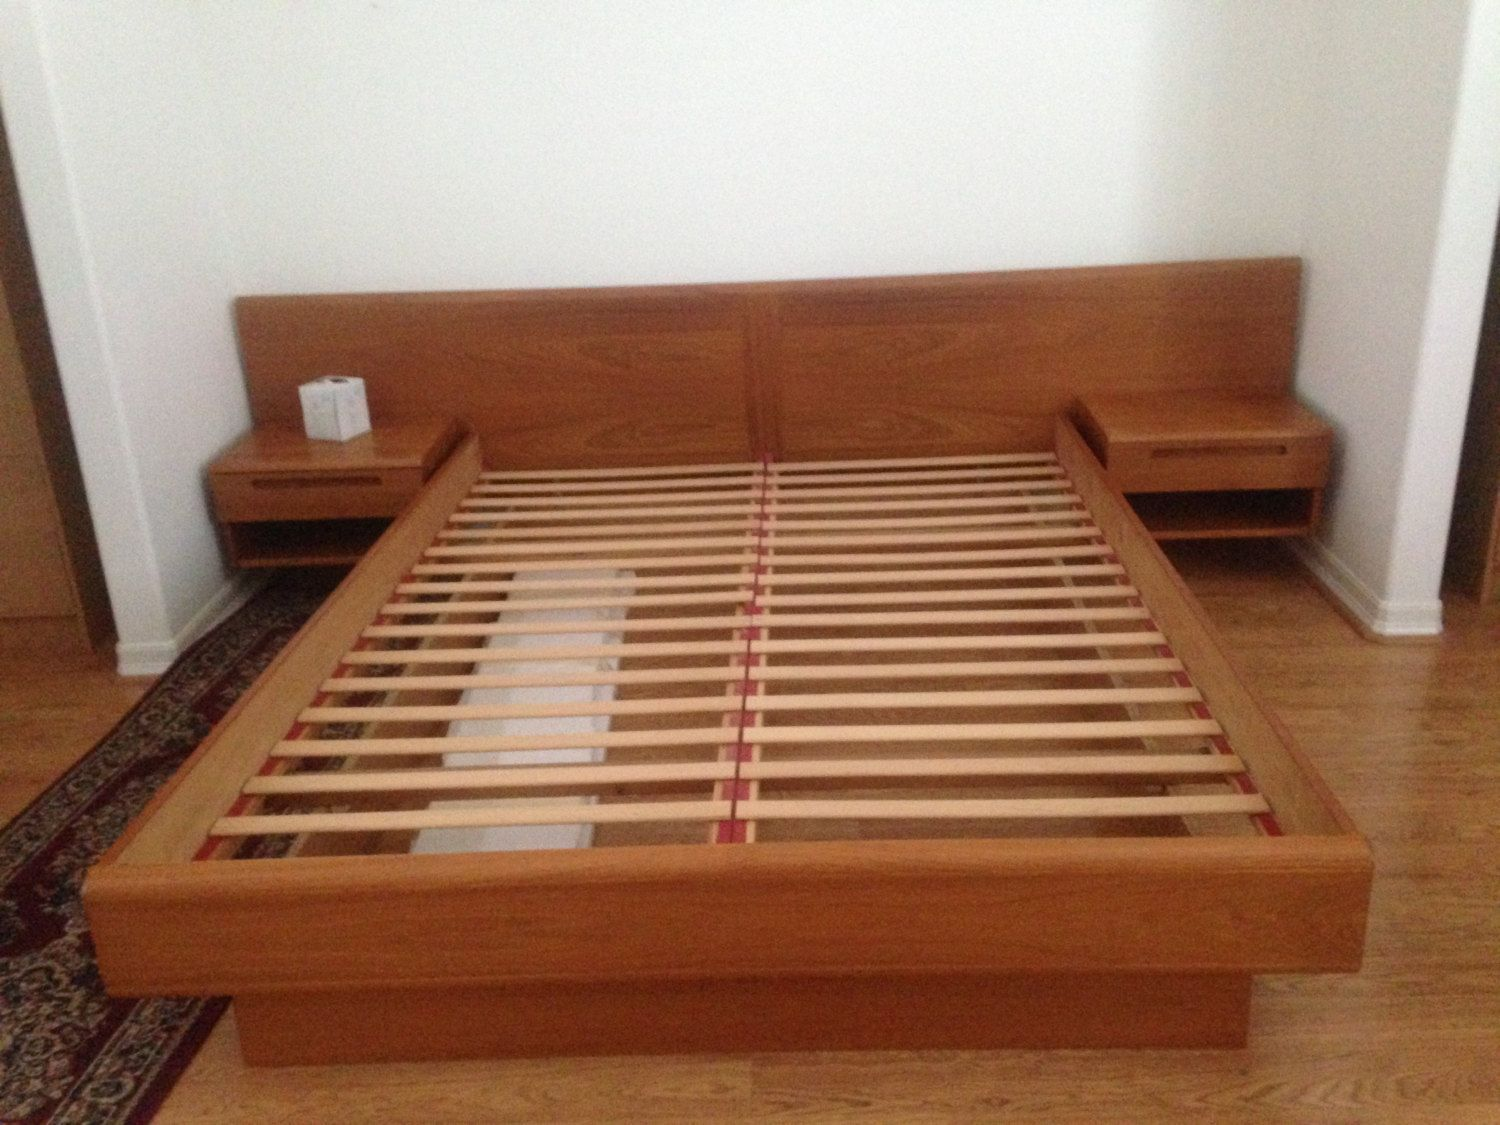 Queen Bed Frame Fantastic Furniture Solid Wood Mid Century Modern Bed Frame With Headboard And